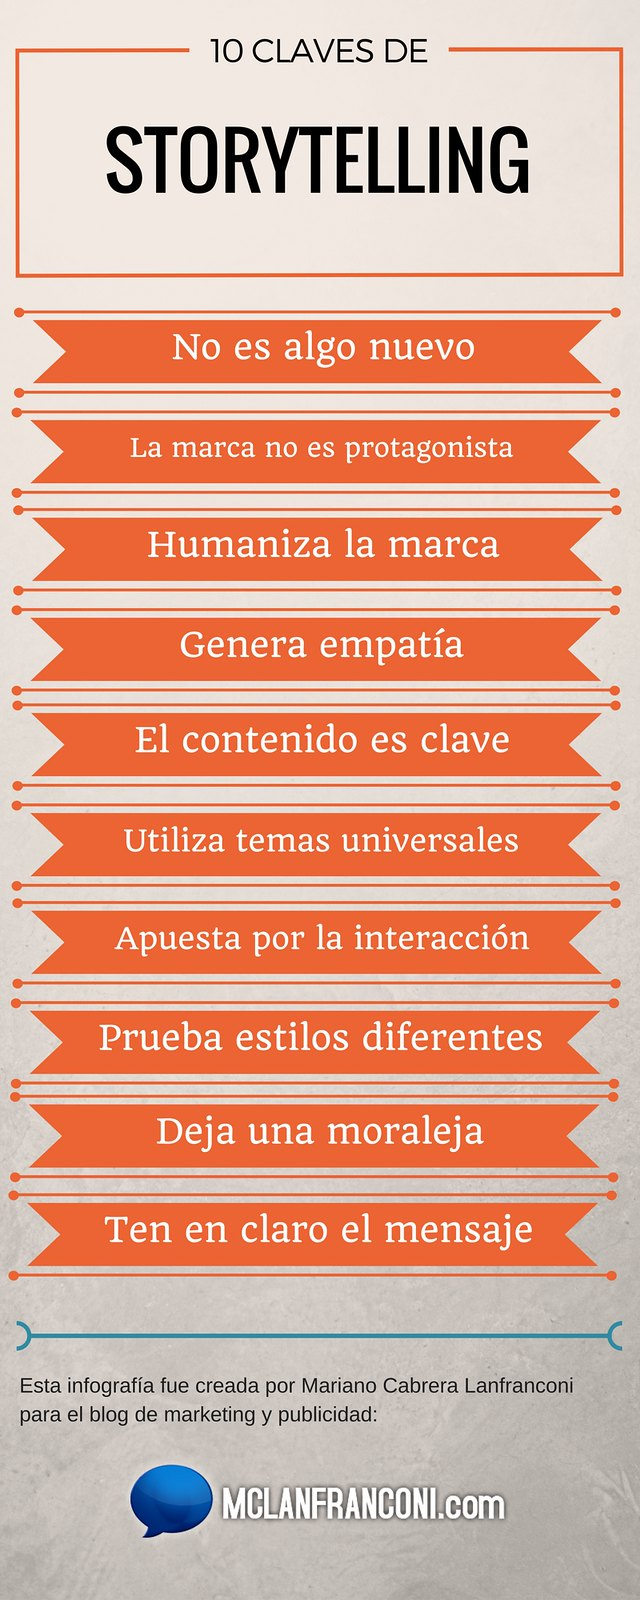 10 claves de storytelling